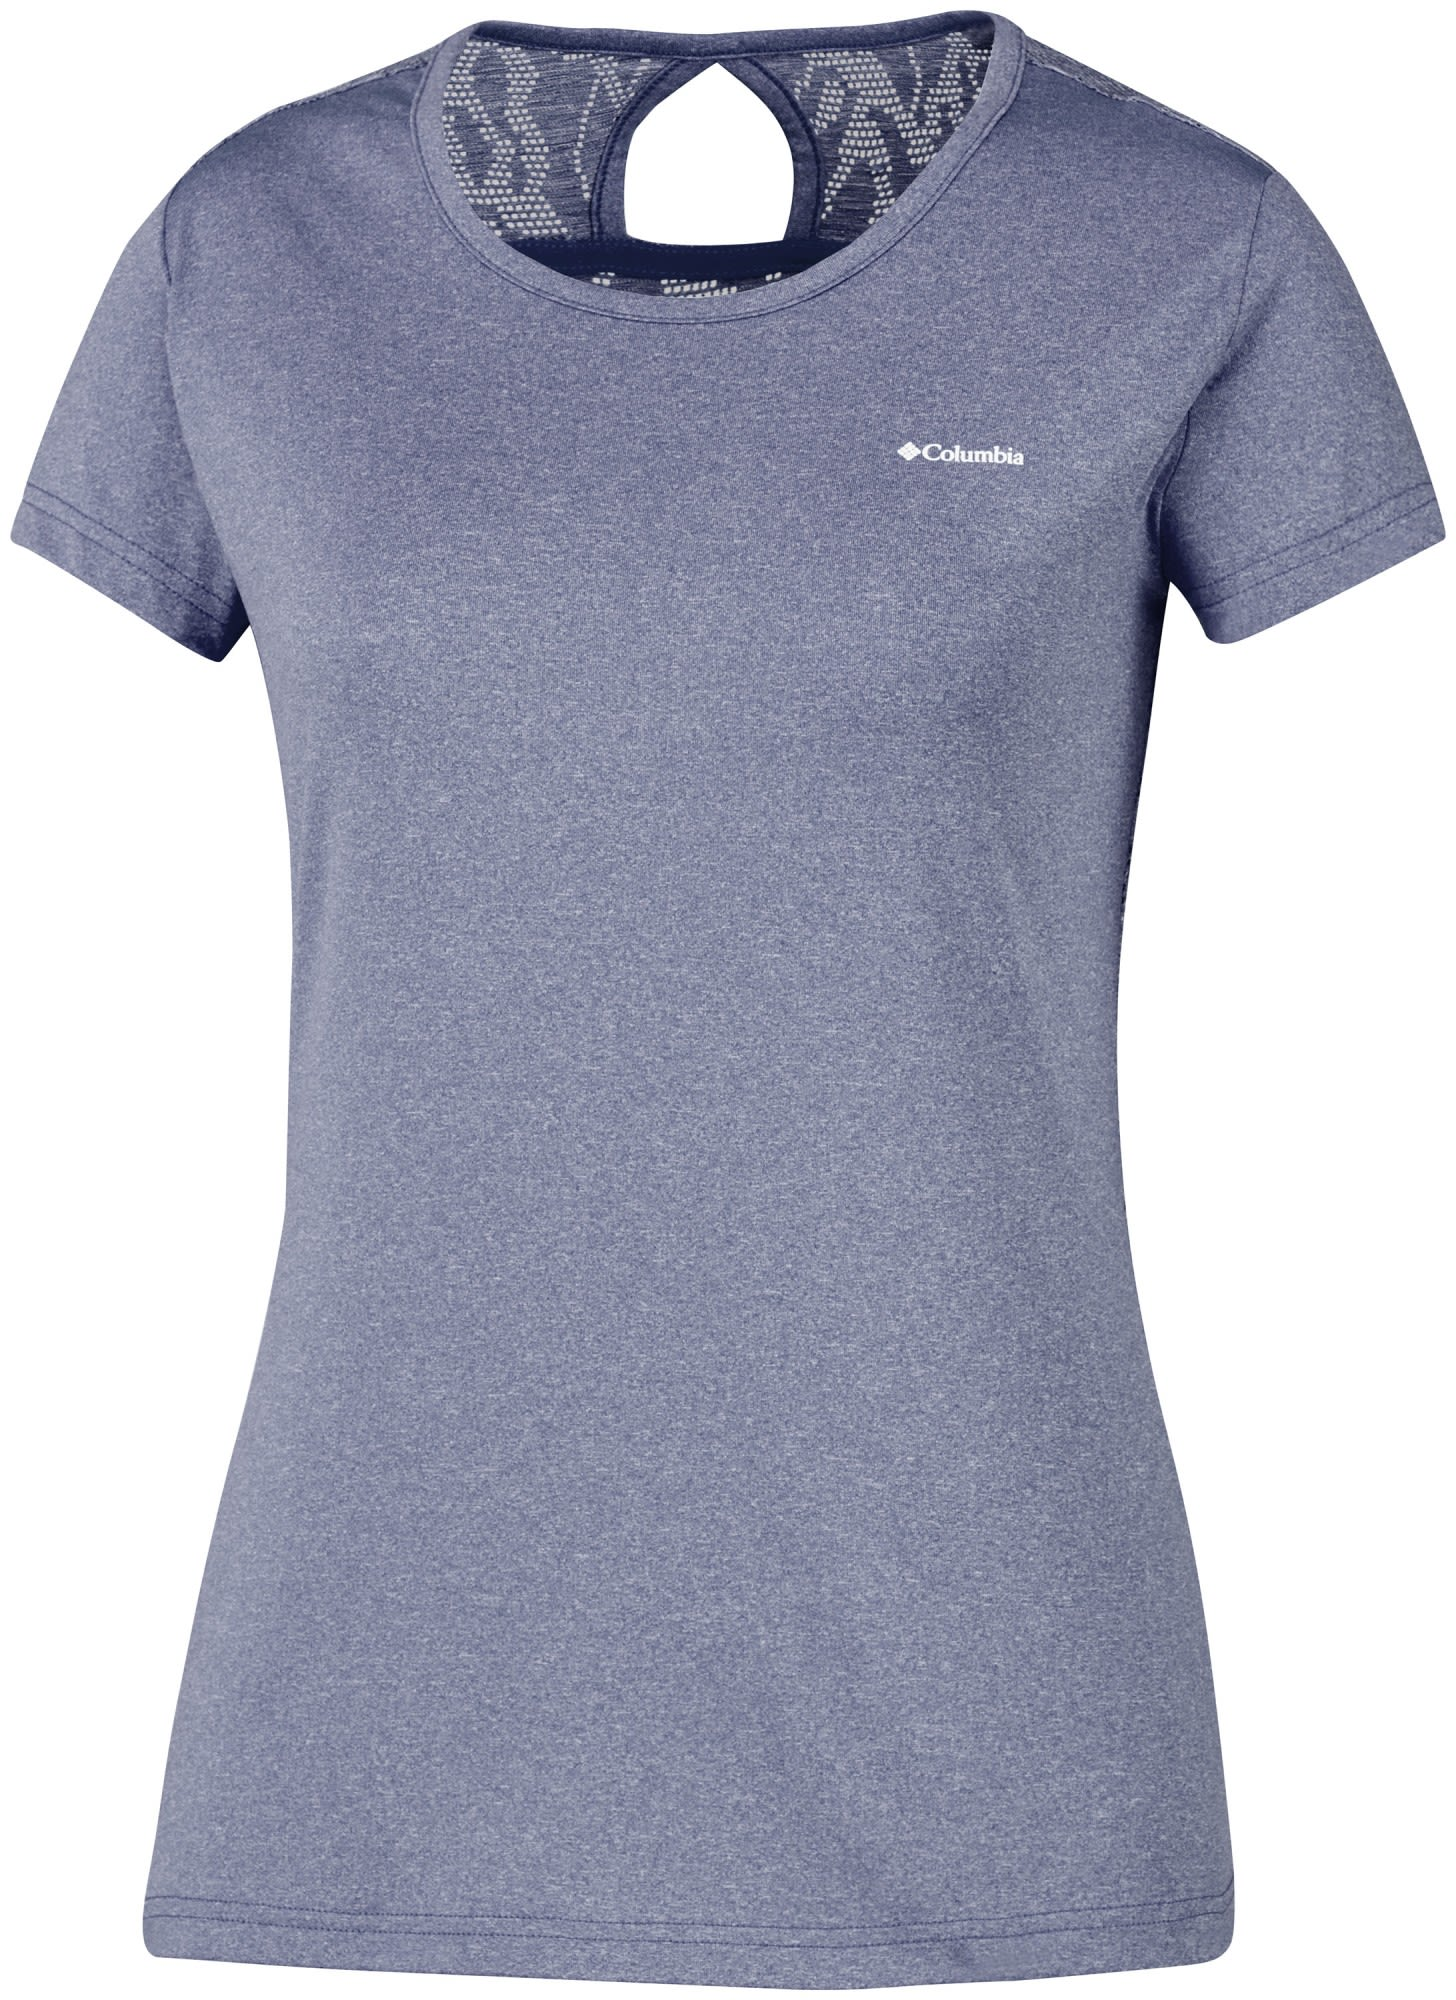 Columbia Peak TO Point Novelty Short Sleeve Shirt Blau, Female Kurzarm-Shirt, M